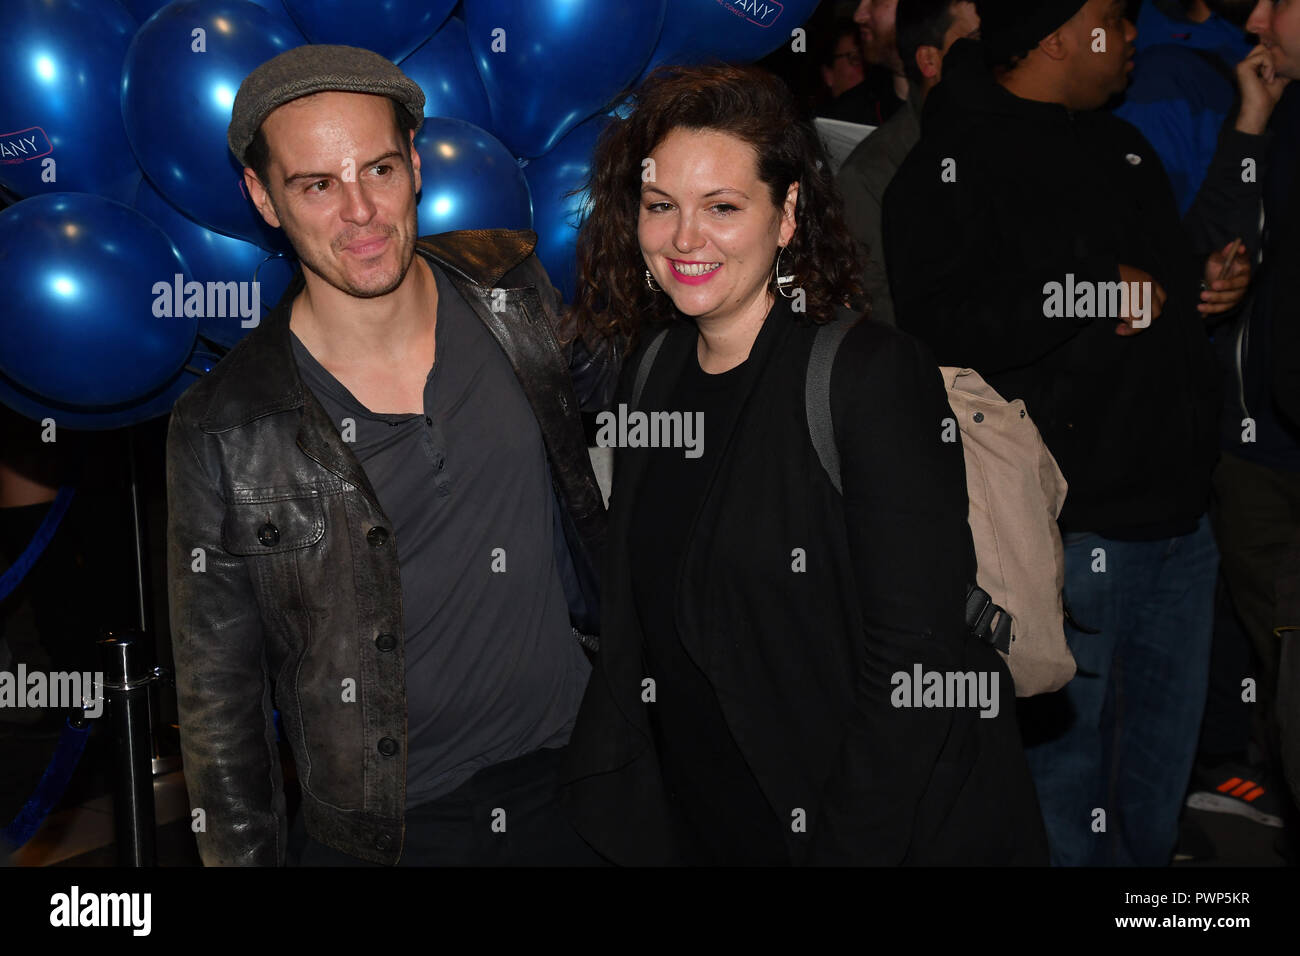 London, UK. 17th Oct, 2018. Andrew Scott attend the Company - Opening Night at Gielgud Theatre, London, UK. 17 October 2018. Credit: Picture Capital/Alamy Live News - Stock Image